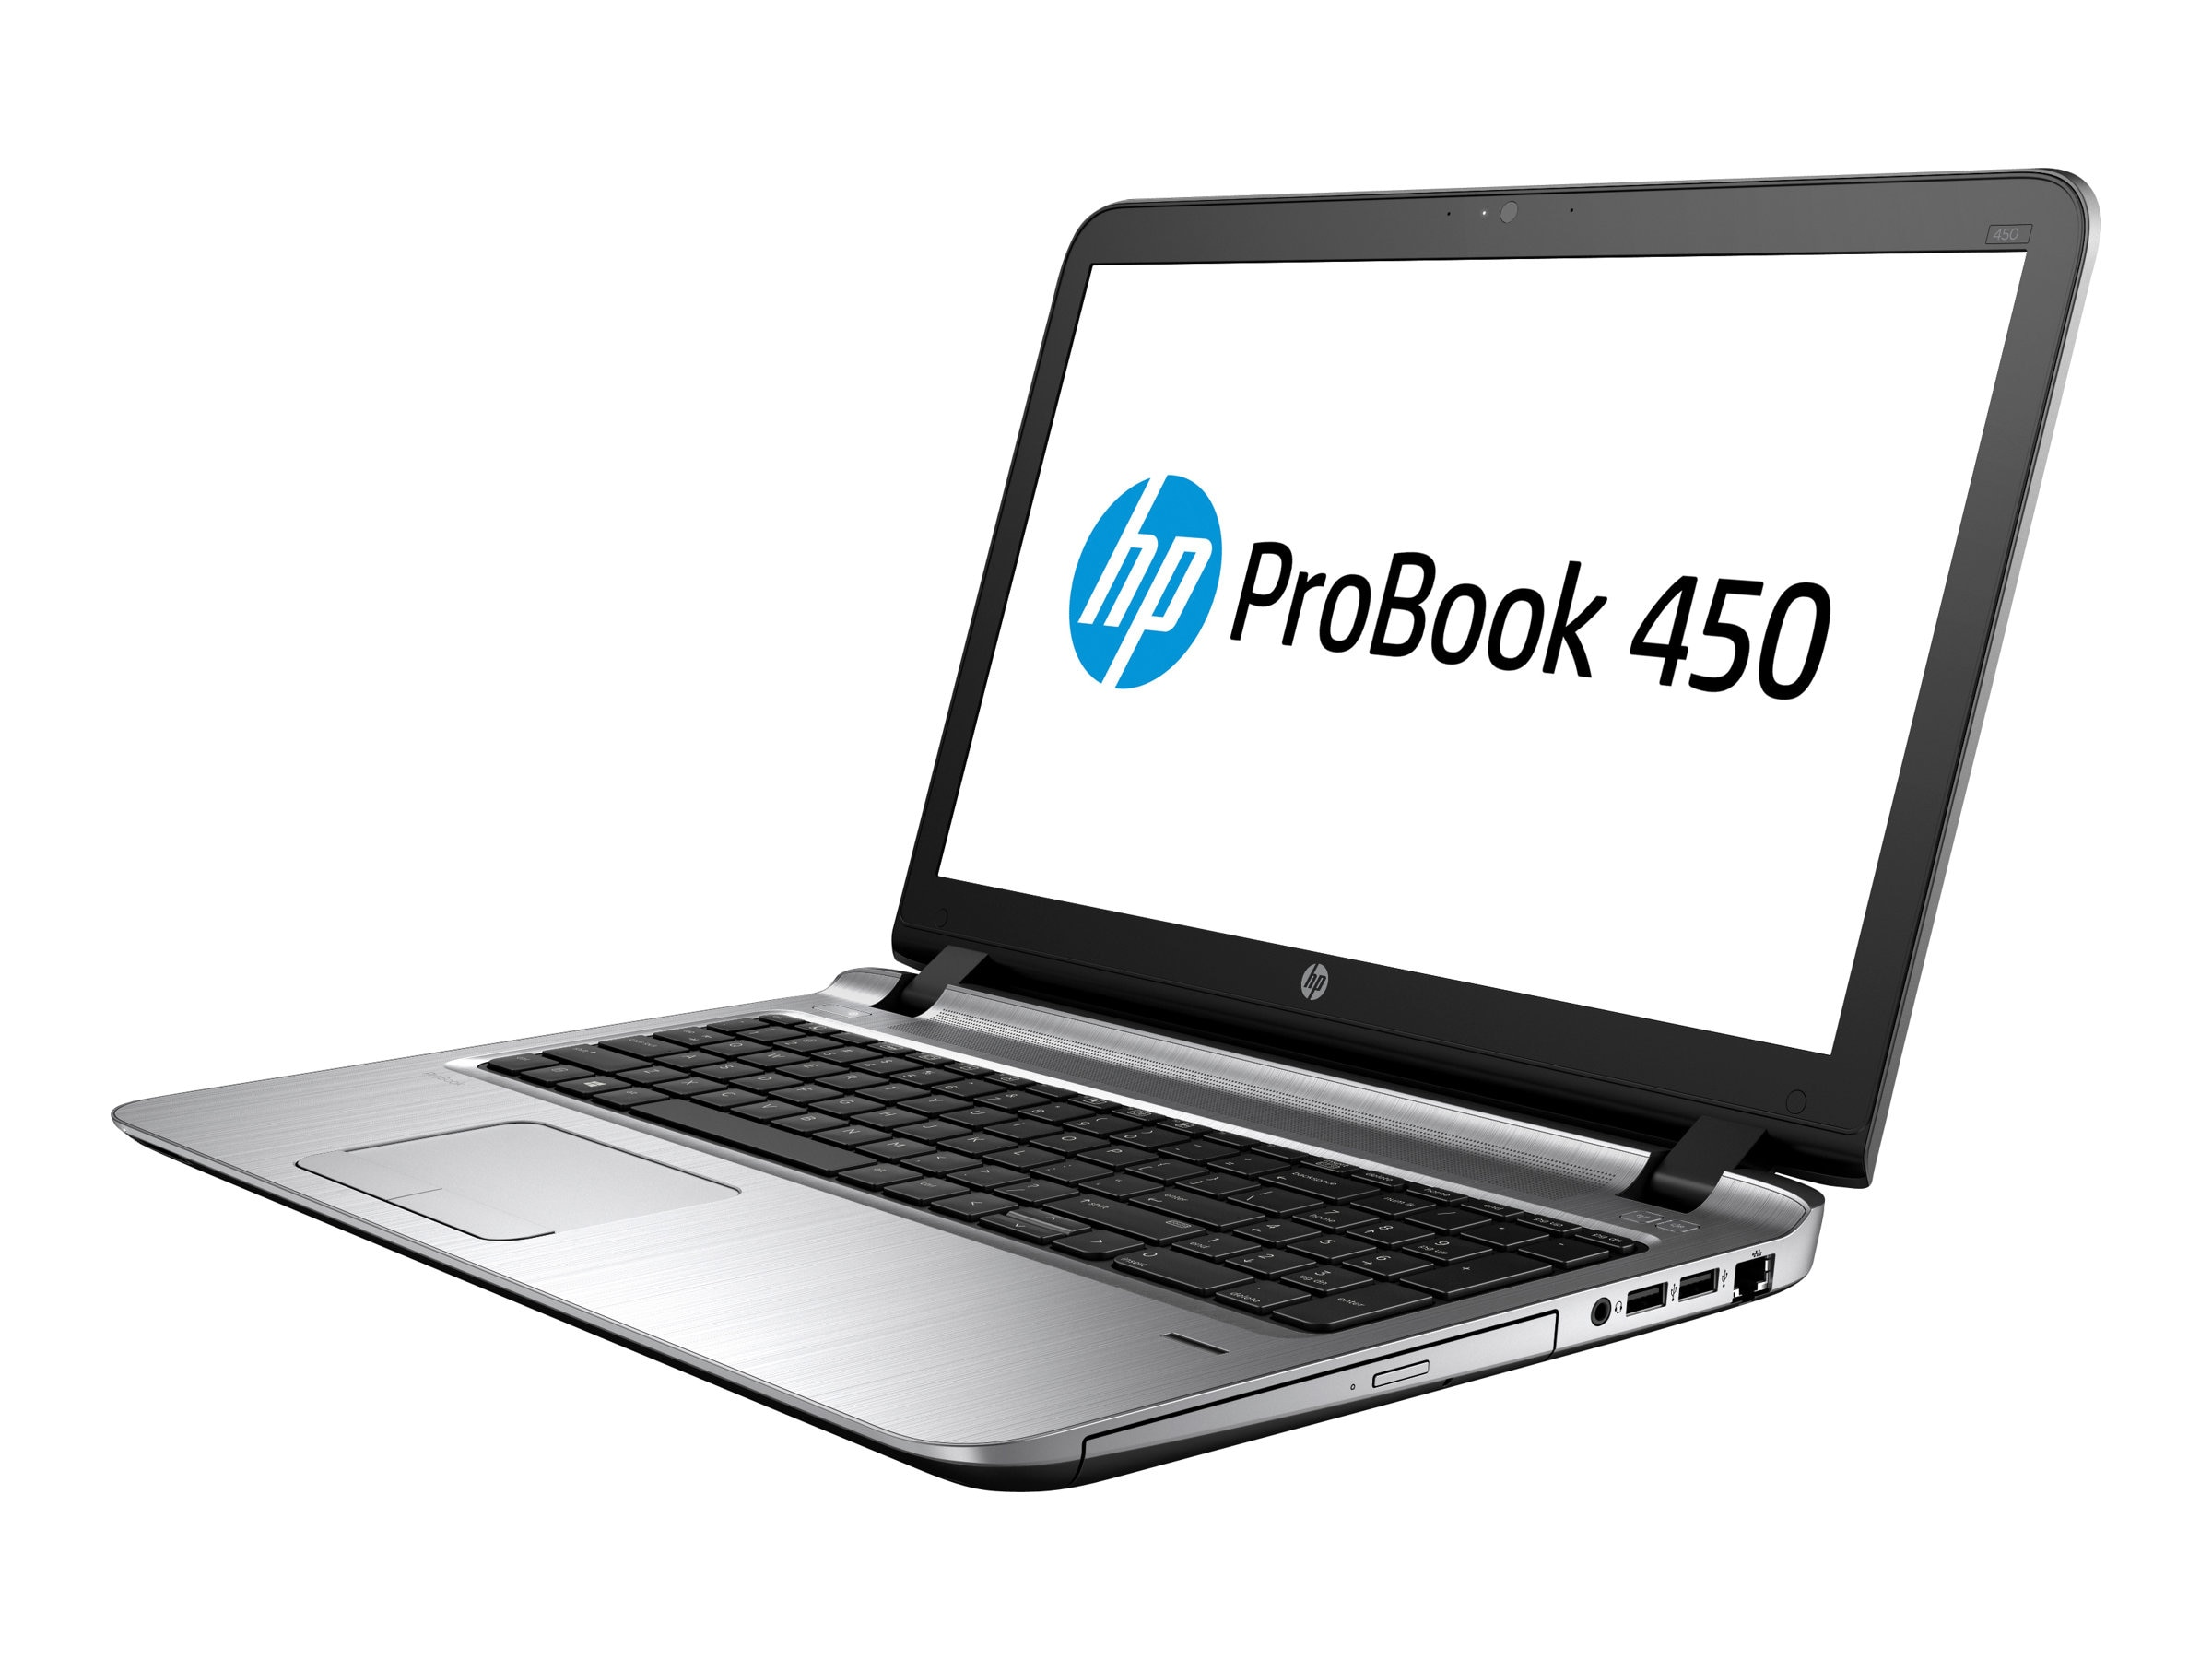 HP ProBook 450 G3 2.5GHz Core i7 15.6in display